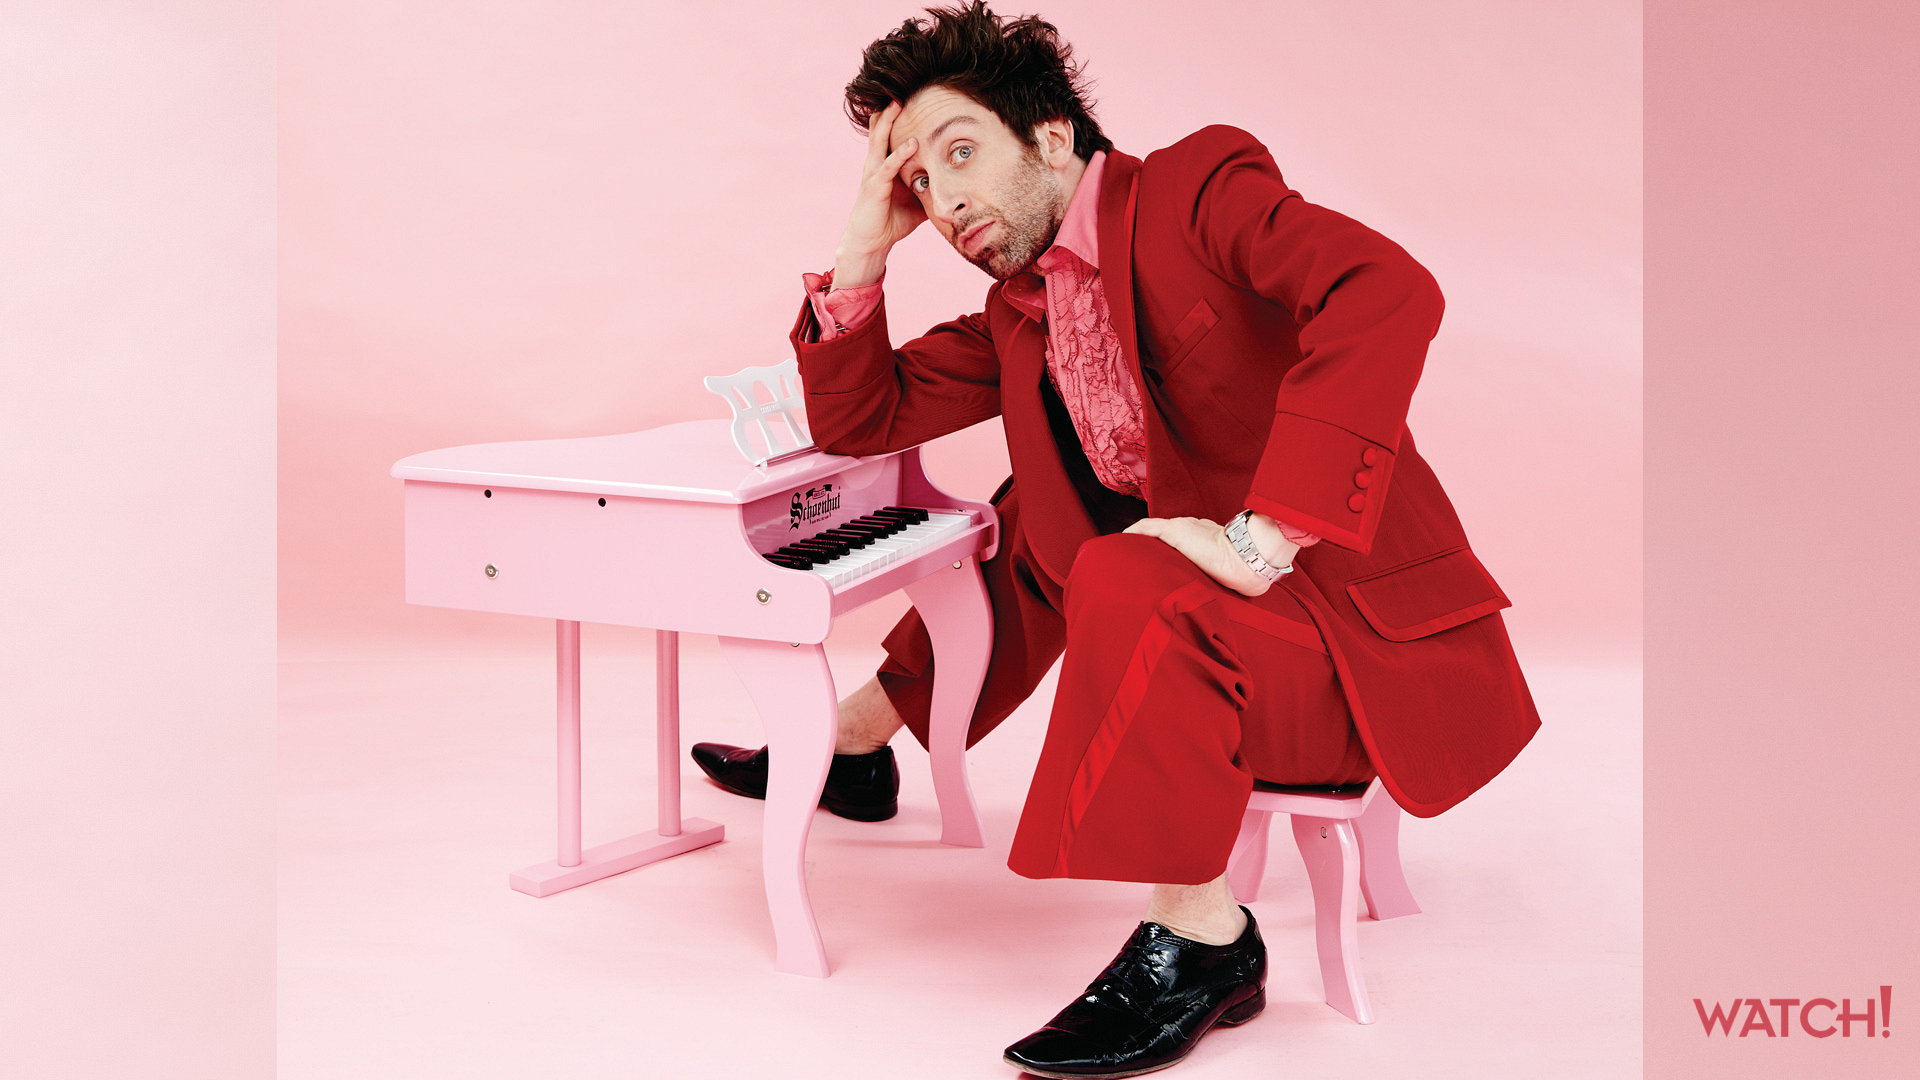 Simon Helberg plays up his curious side, and we can't get enough of it!